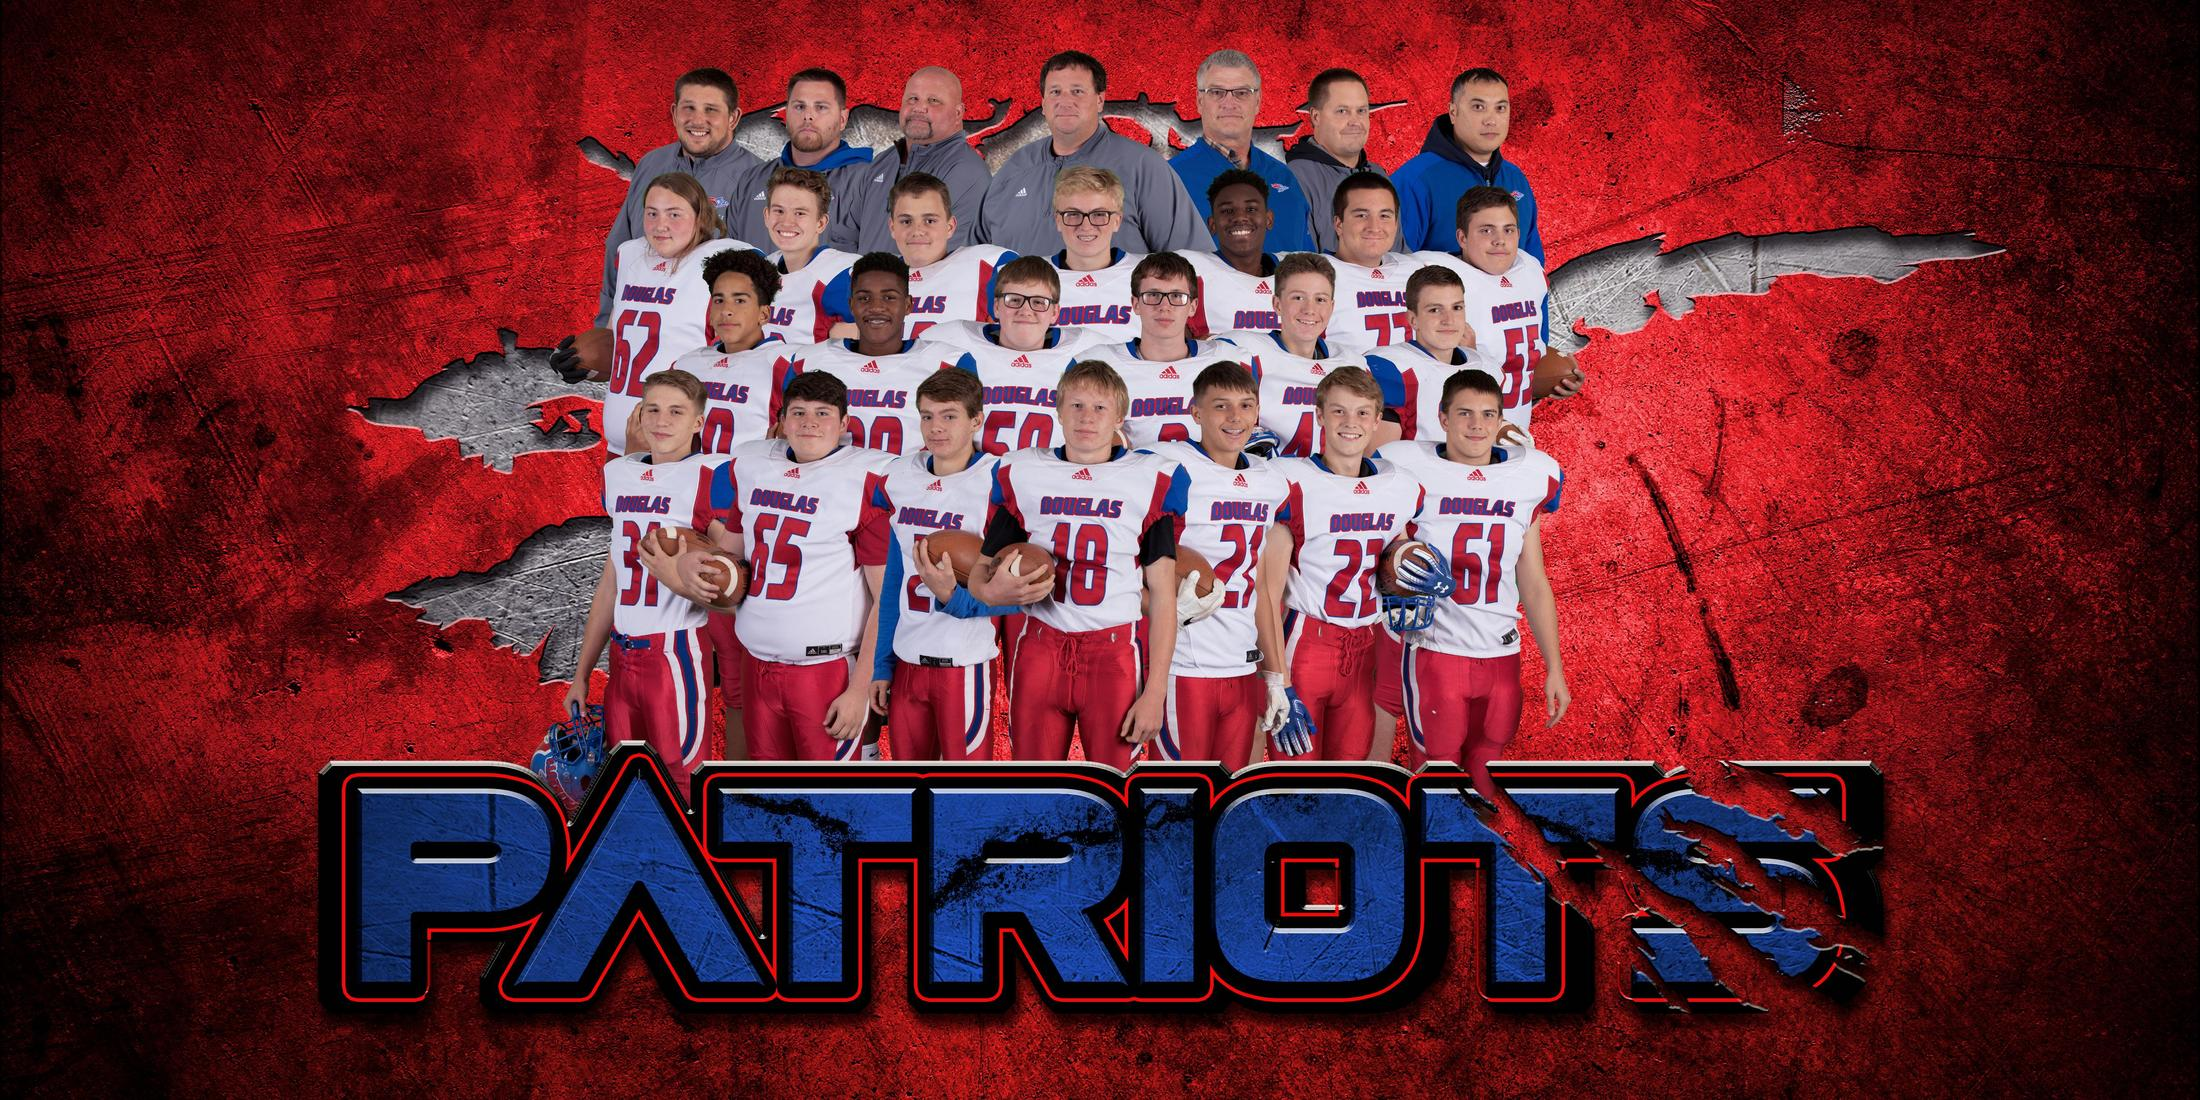 JV Football photo by Angie Vinson